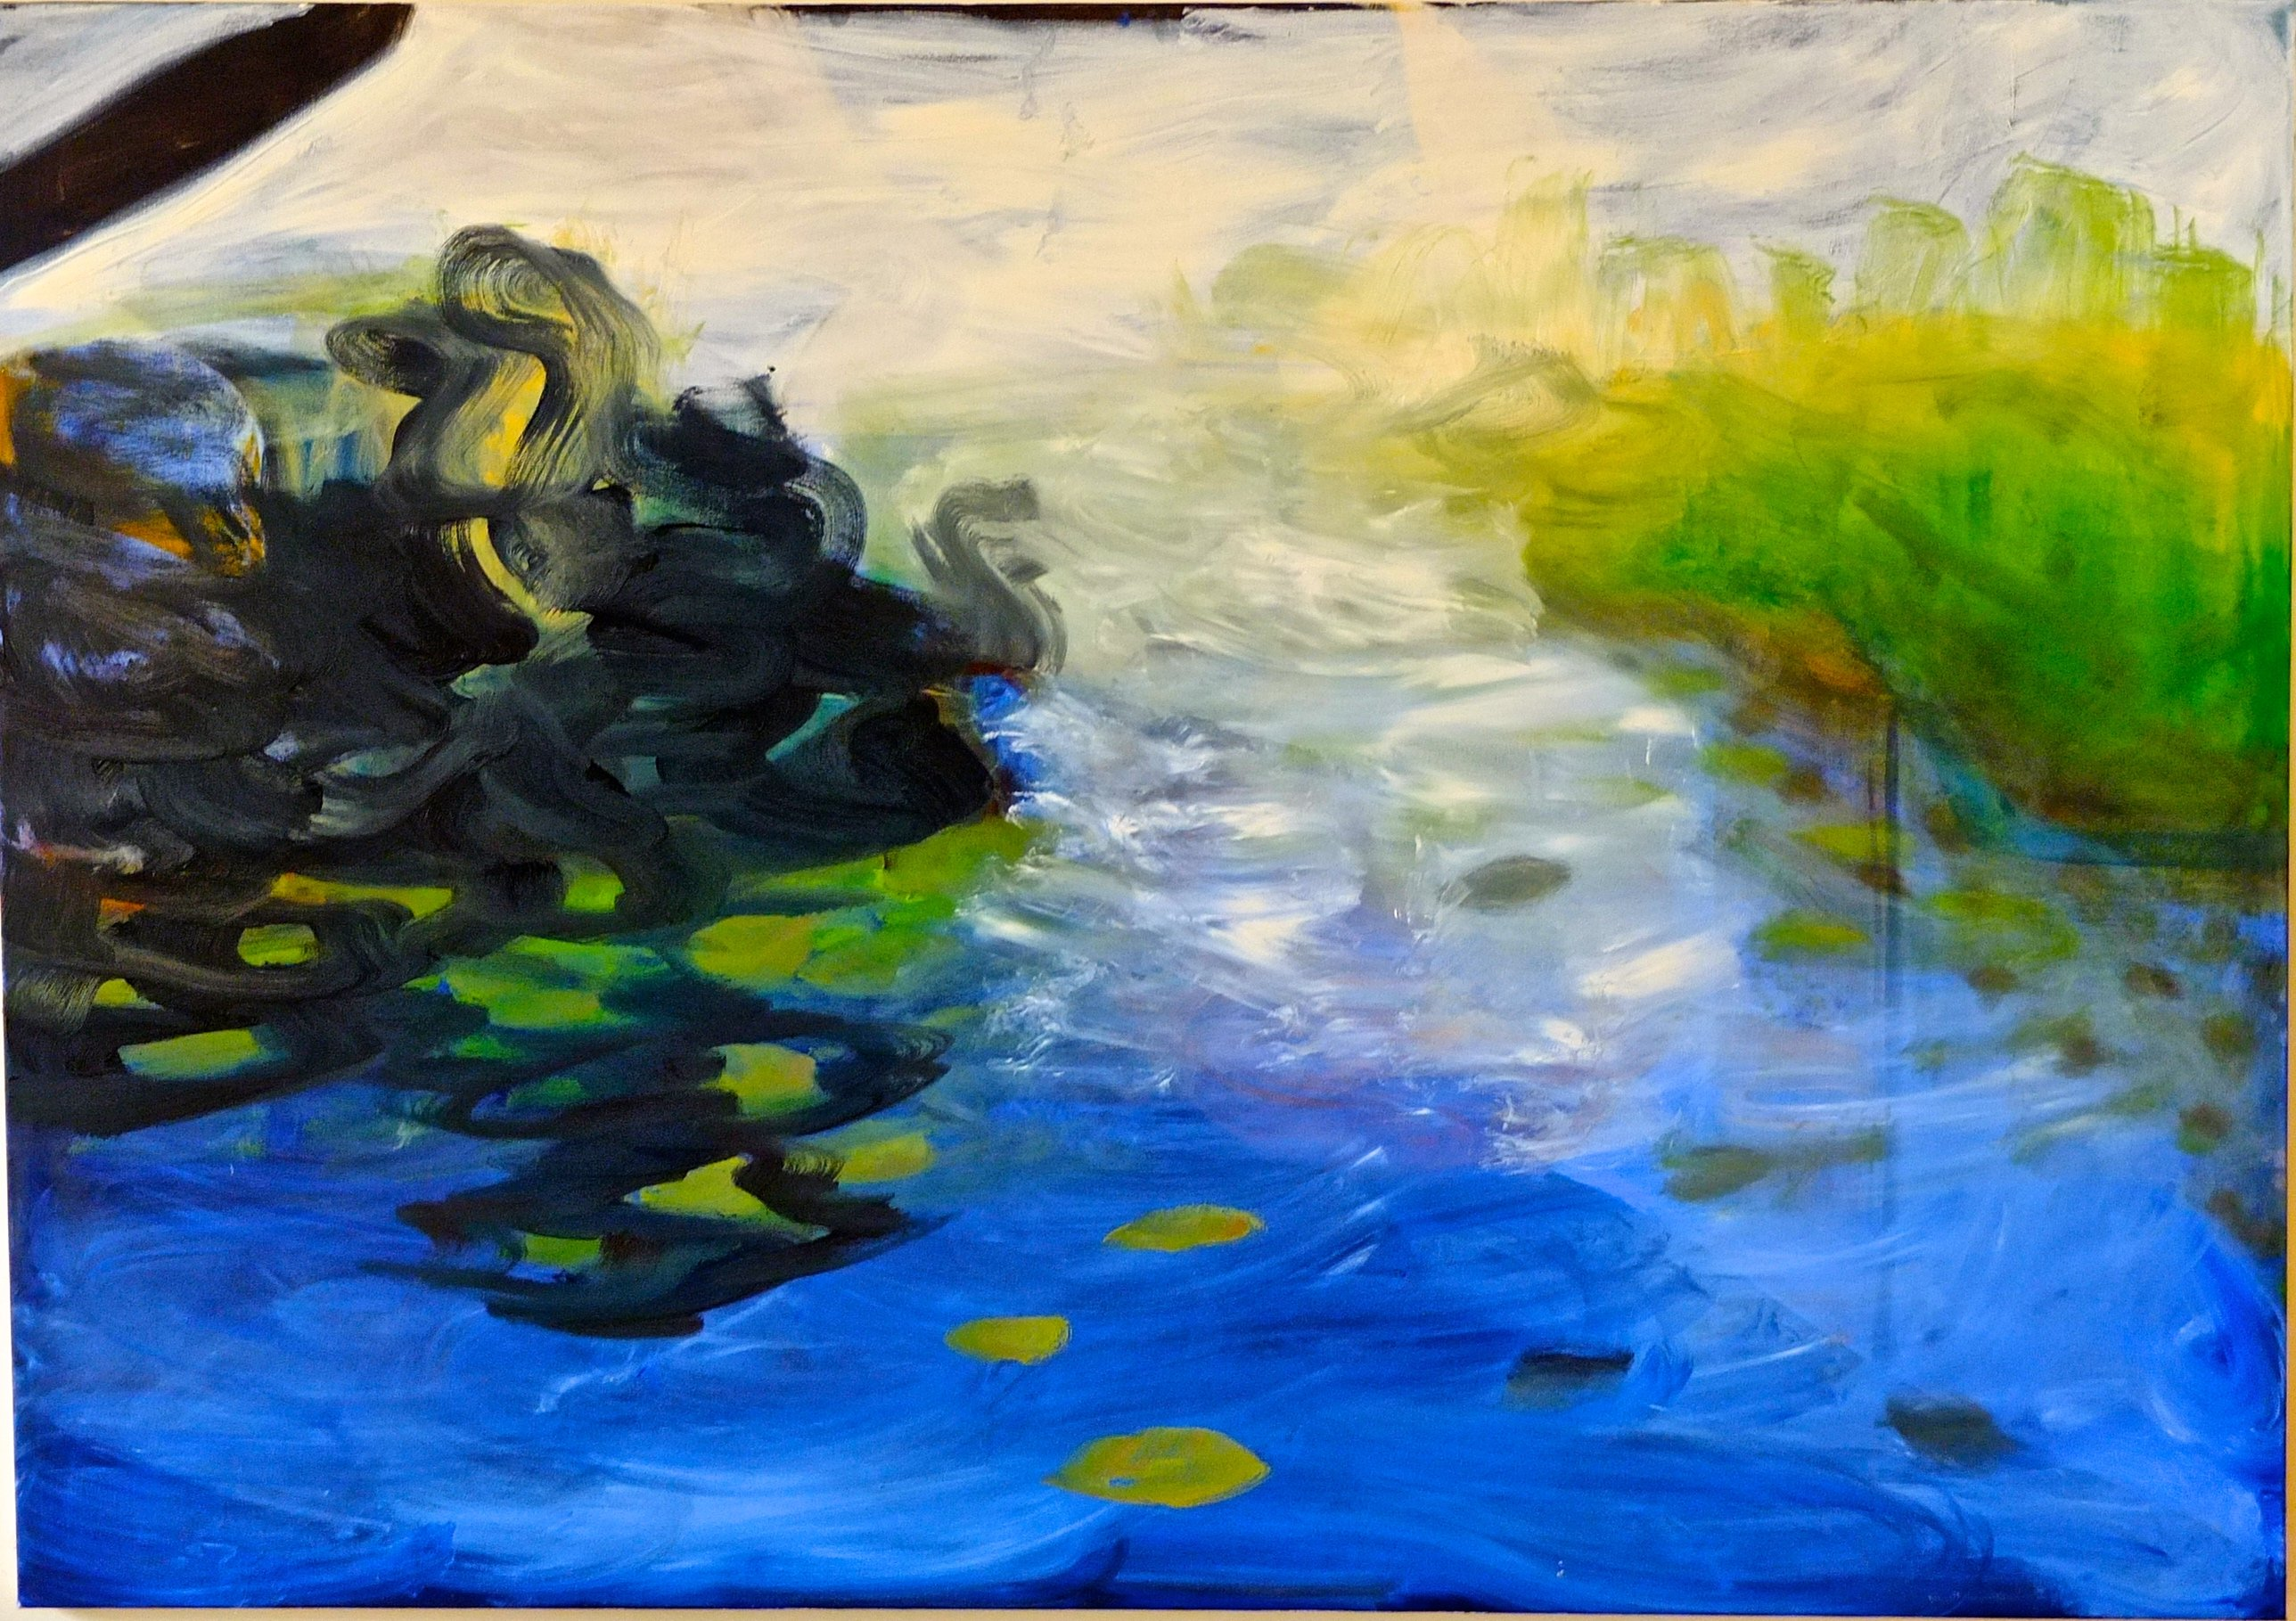 """""""Oil and Water,"""" Oil on Canvas, 48"""" x 68"""", by Ronna Lebo, Mud Season Review"""